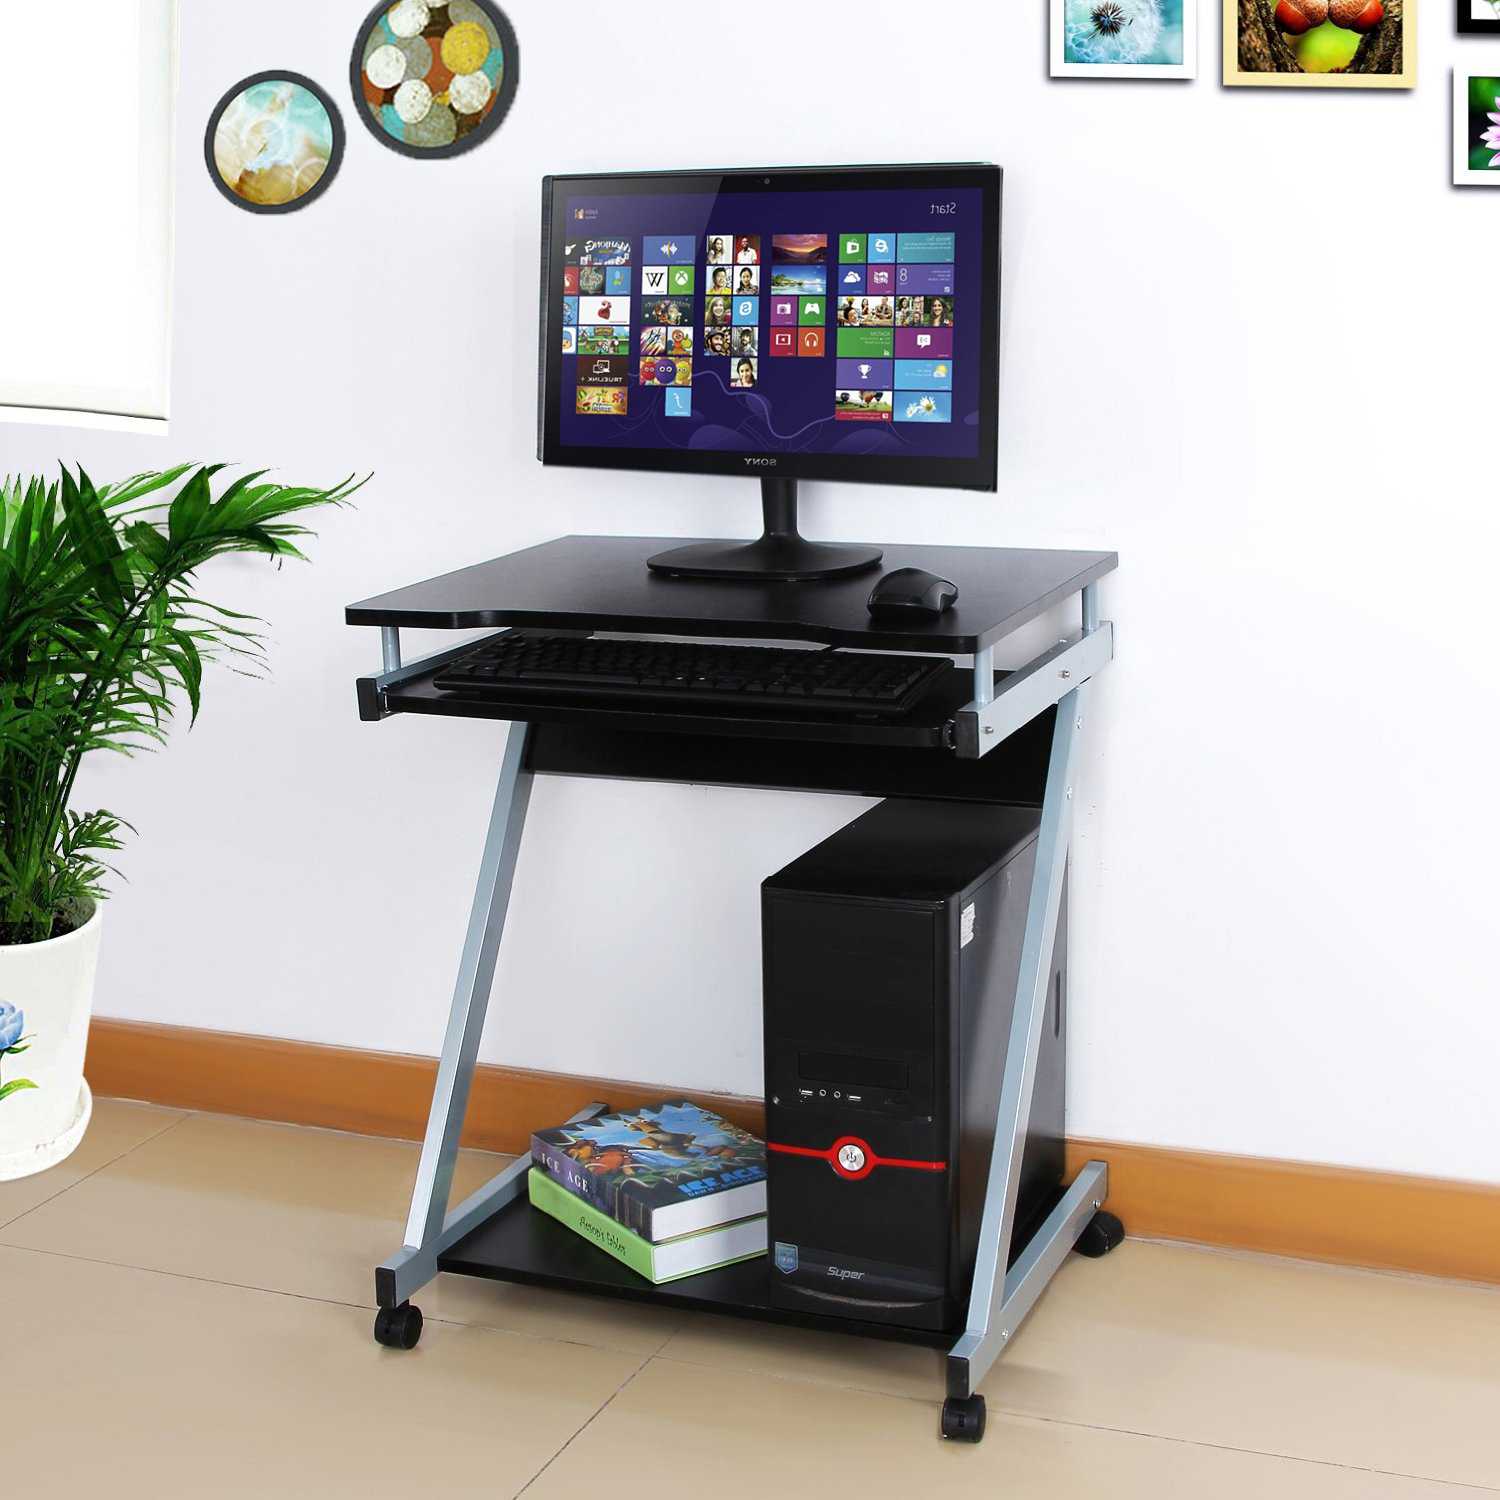 Small z shaped computer desk pc table movable workstation with sliding keyboard 4 wheels black